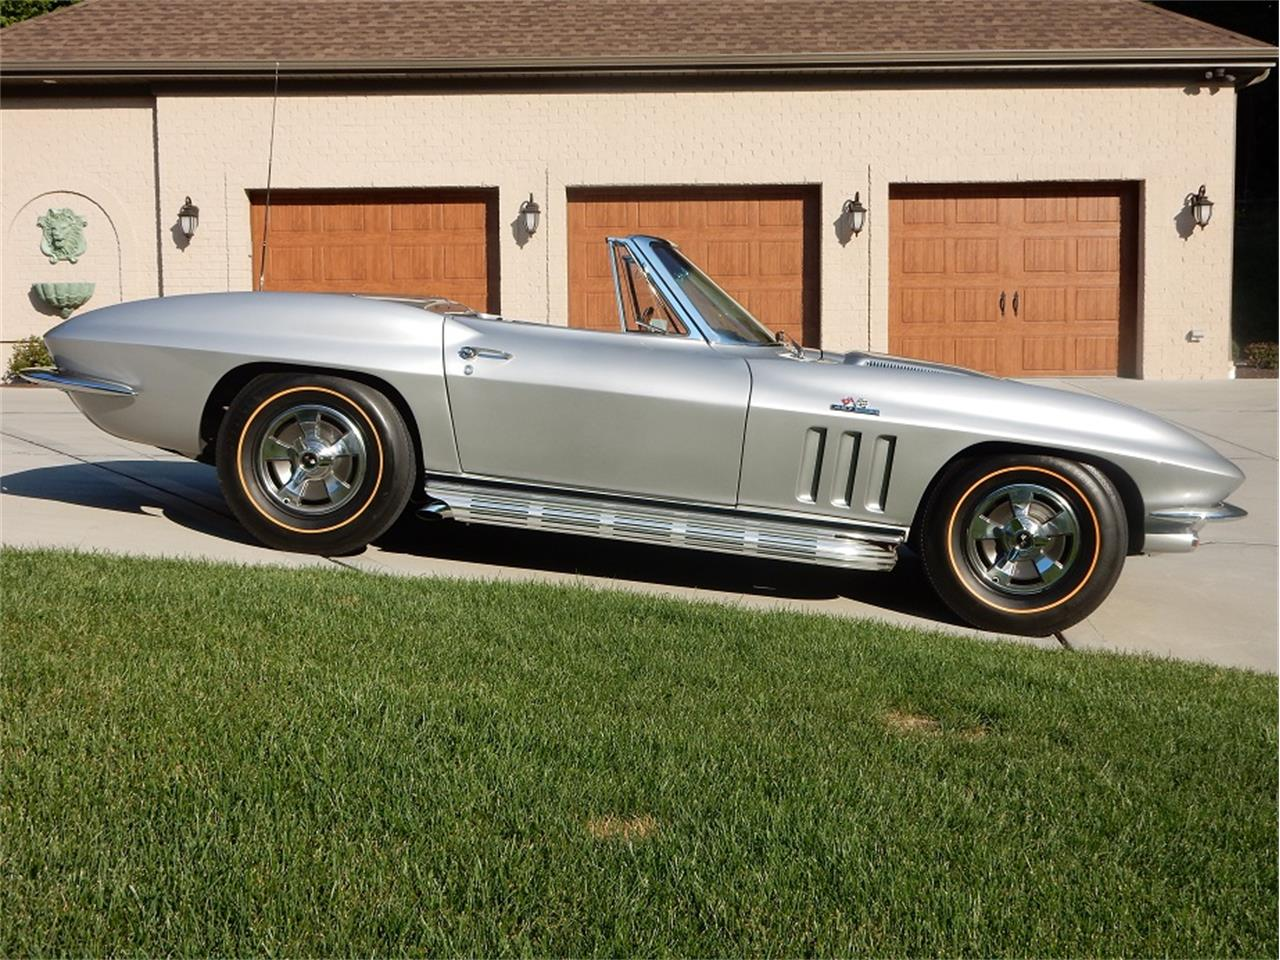 Large Picture of '66 Corvette located in Pennsylvania - $110,000.00 Offered by a Private Seller - Q36Q